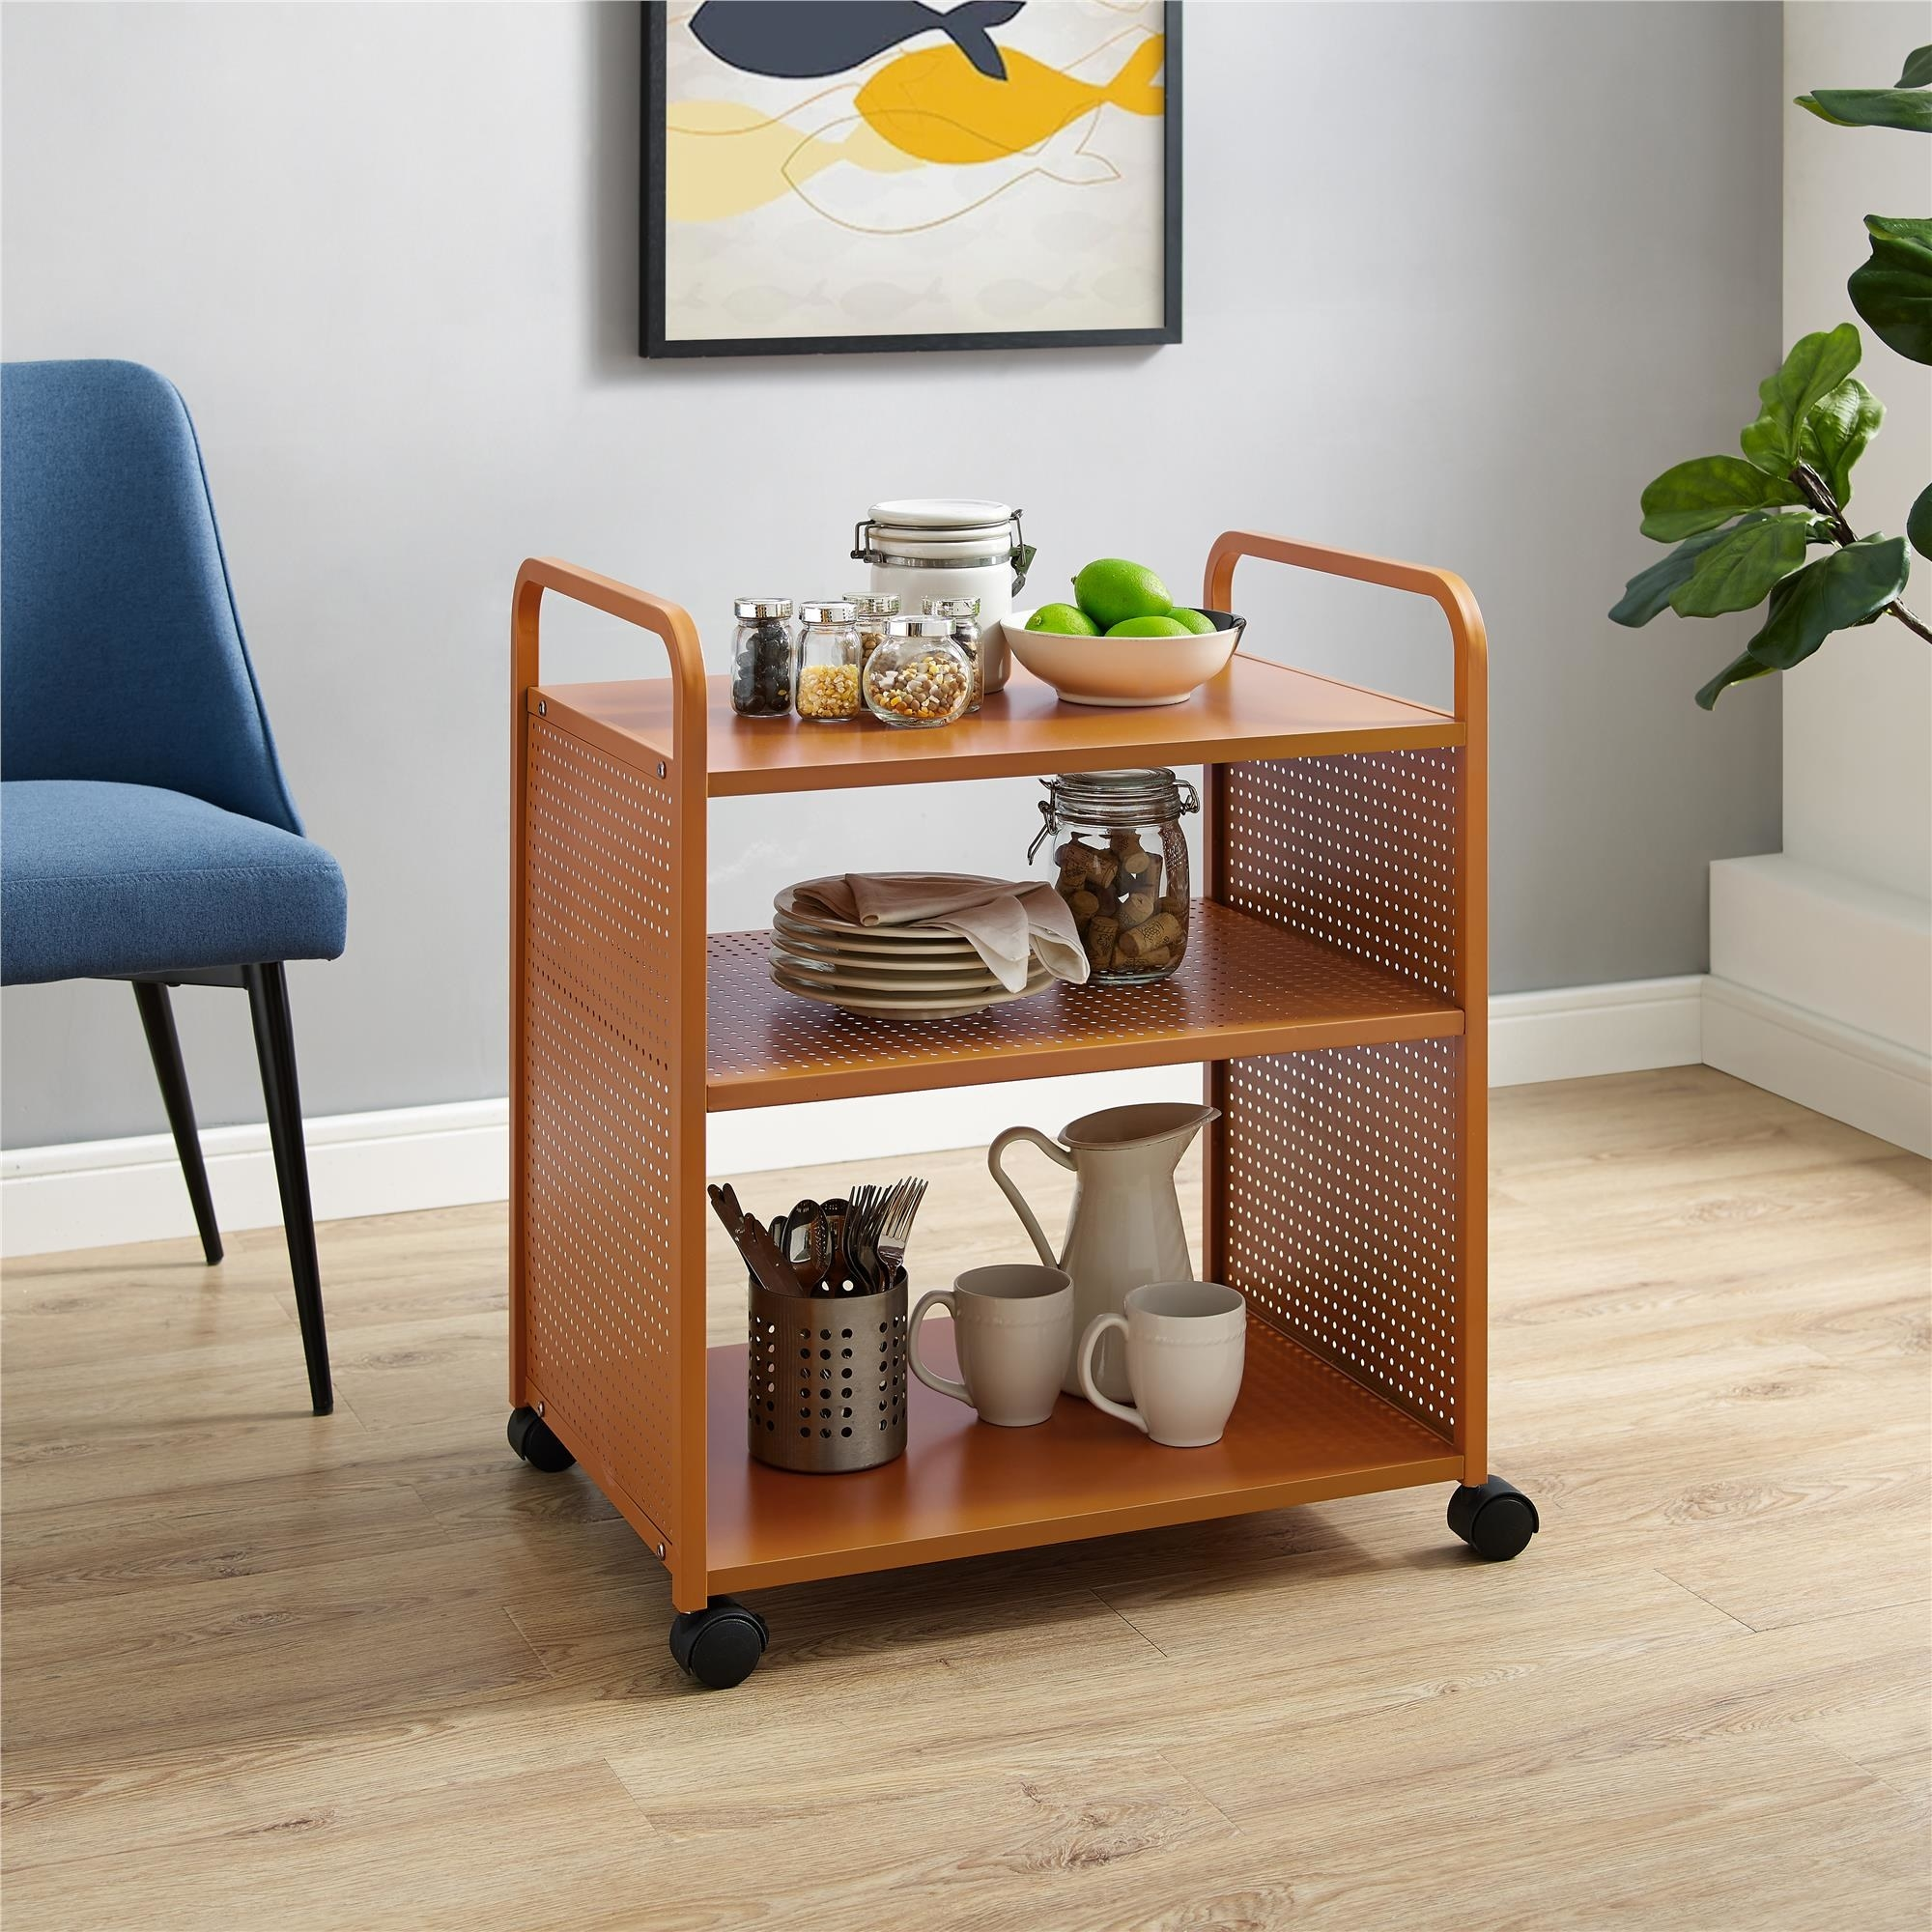 The bar and serving cart